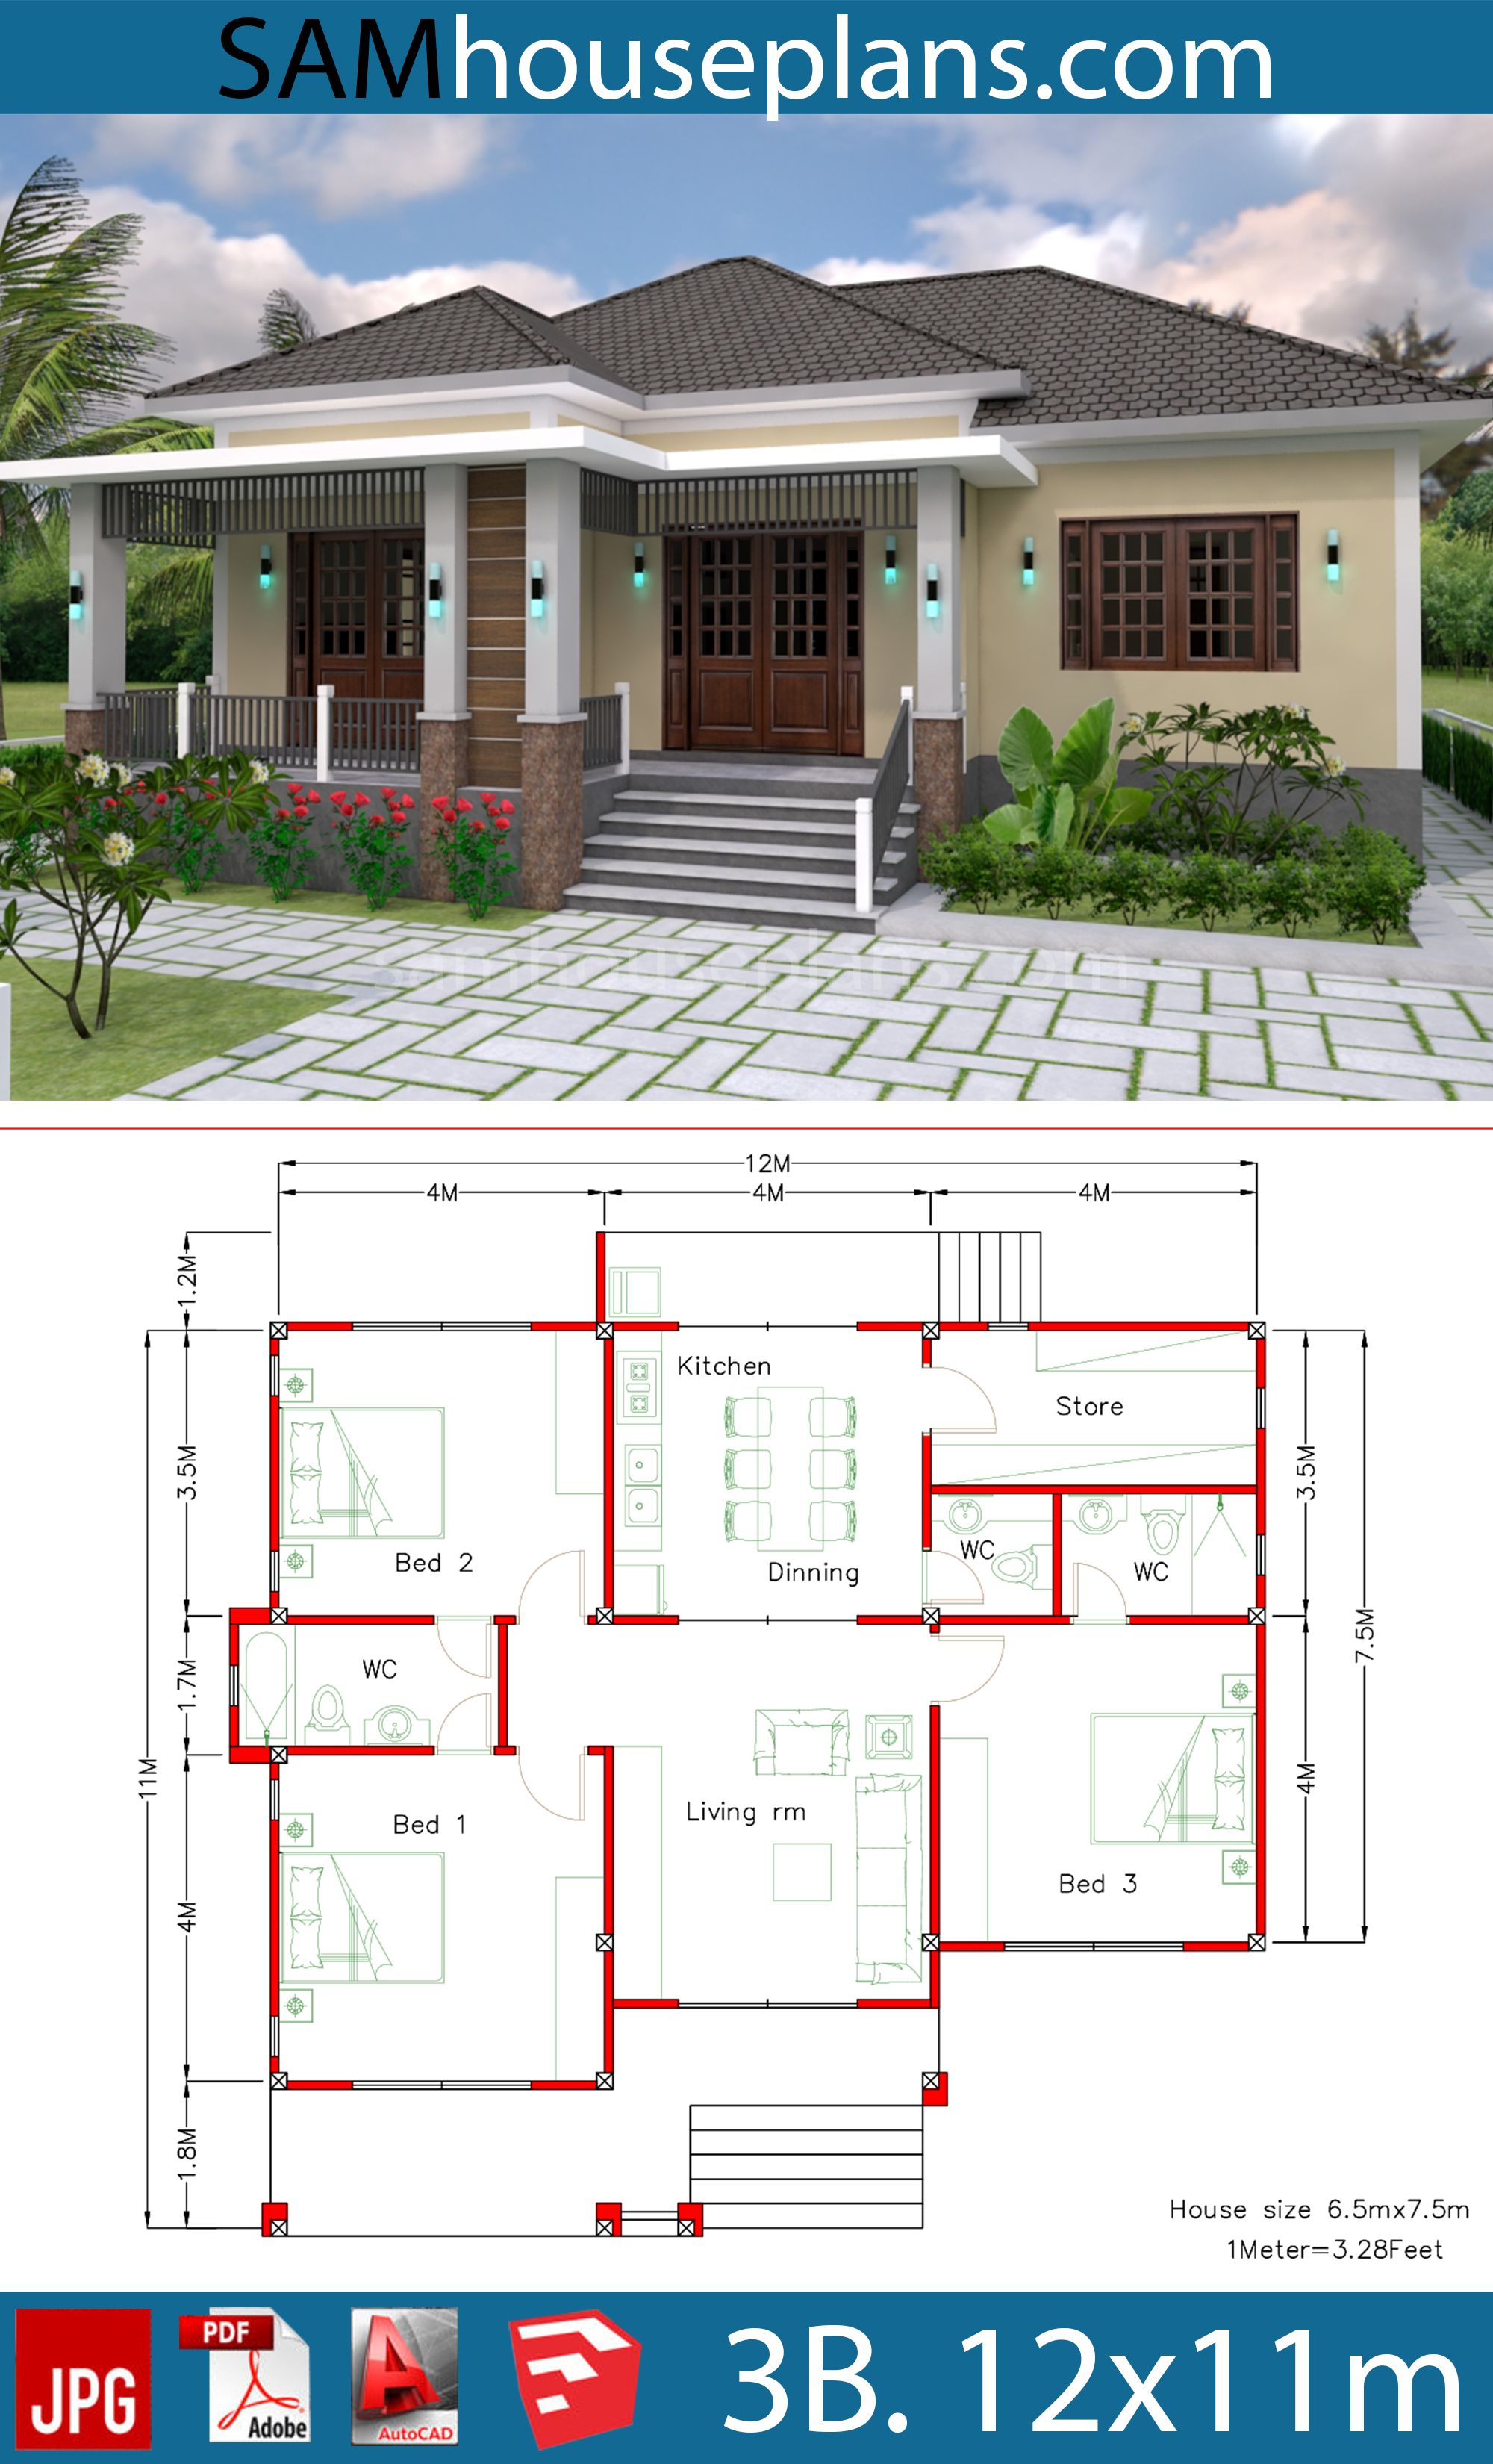 House Plans 12x11m With Full Plan 3beds House Plans Free Downloads Affordable House Plans Family House Plans My House Plans